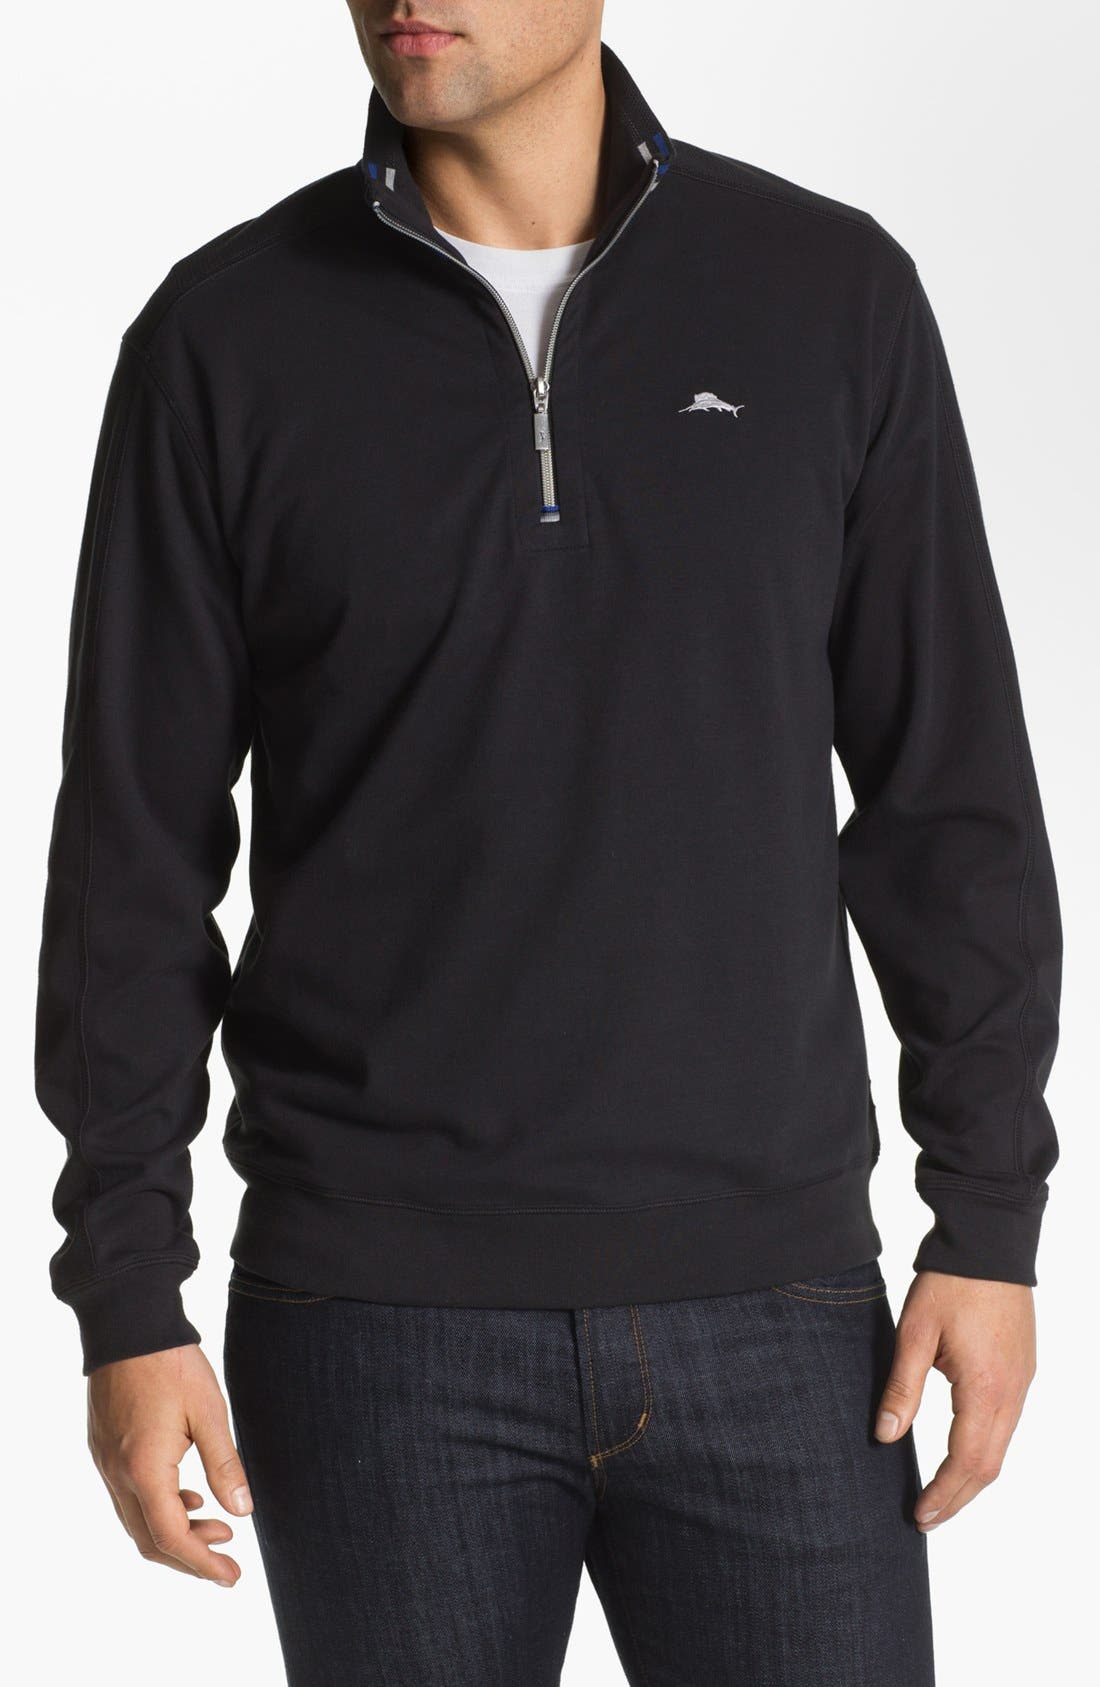 Alternate Image 1 Selected - Tommy Bahama Half Zip Sweater